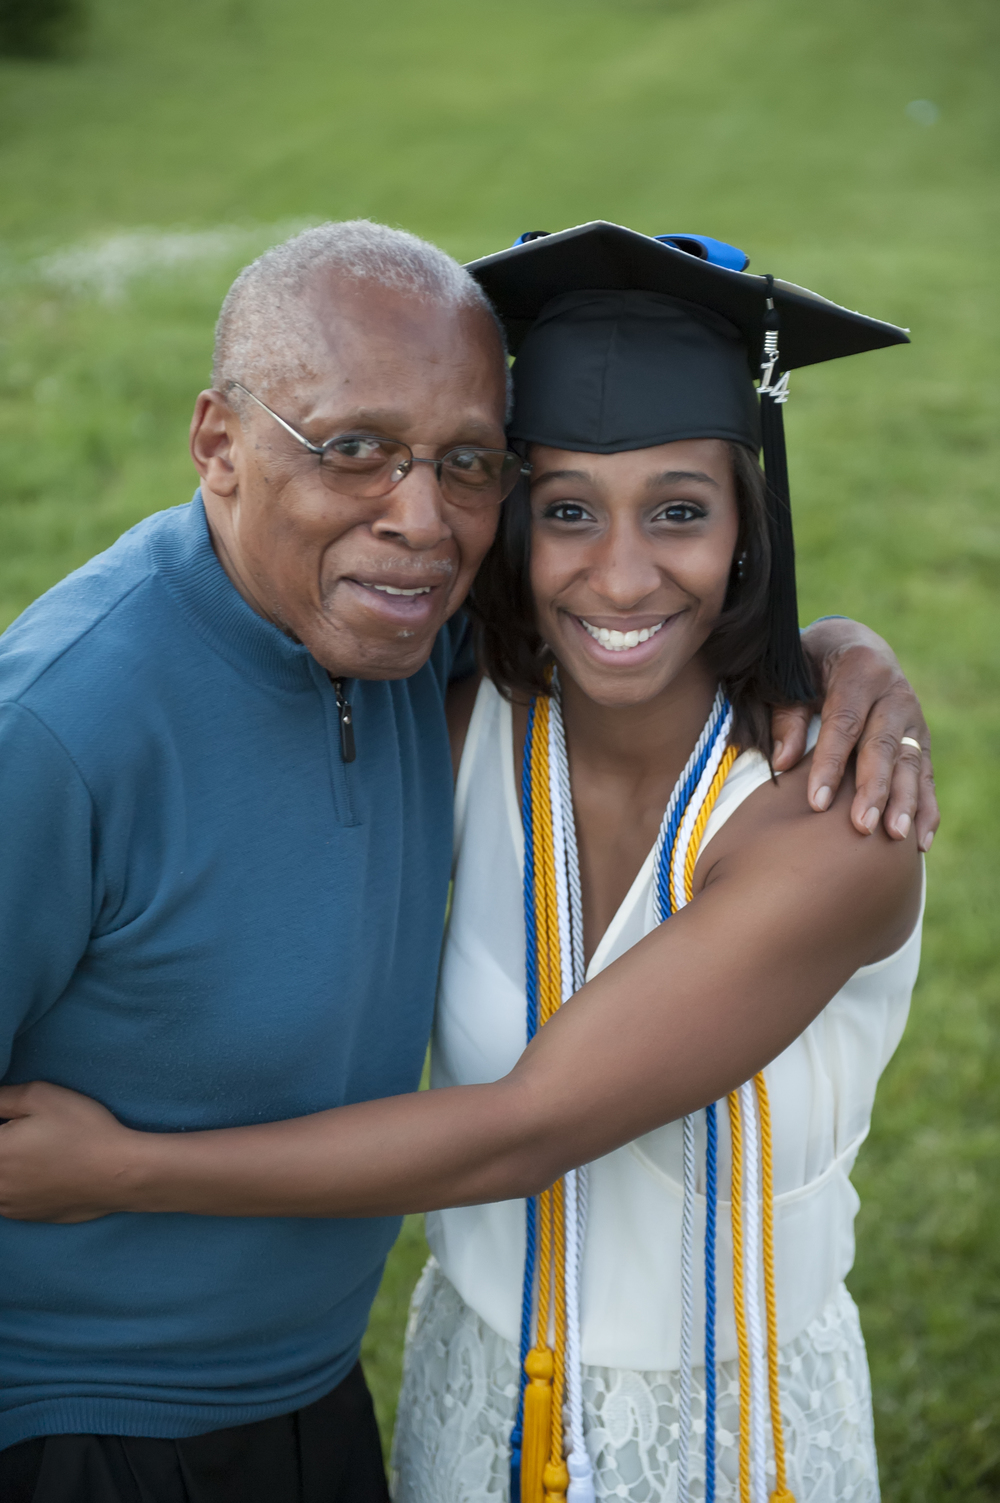 Grandfather enjoying his daughter's graduation.